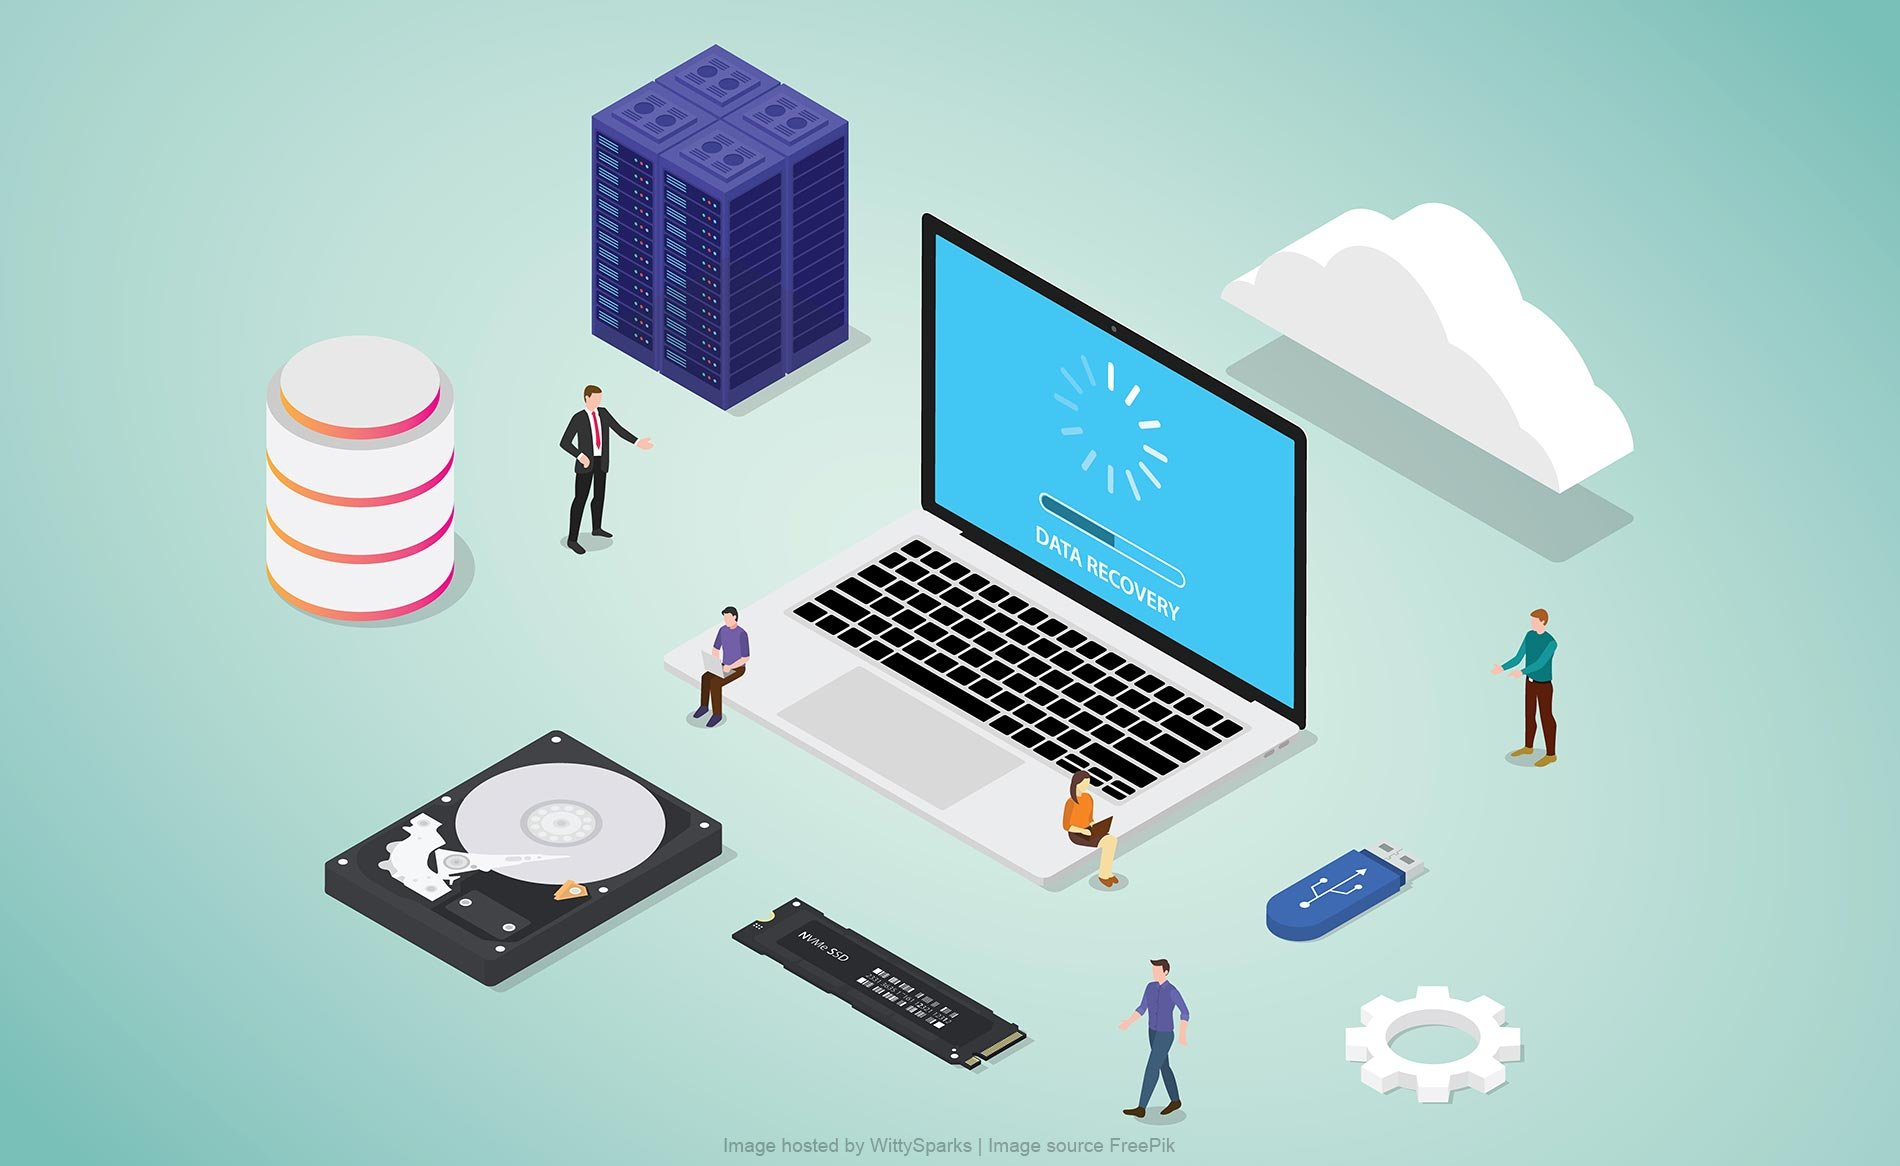 Data recovery software for your small business